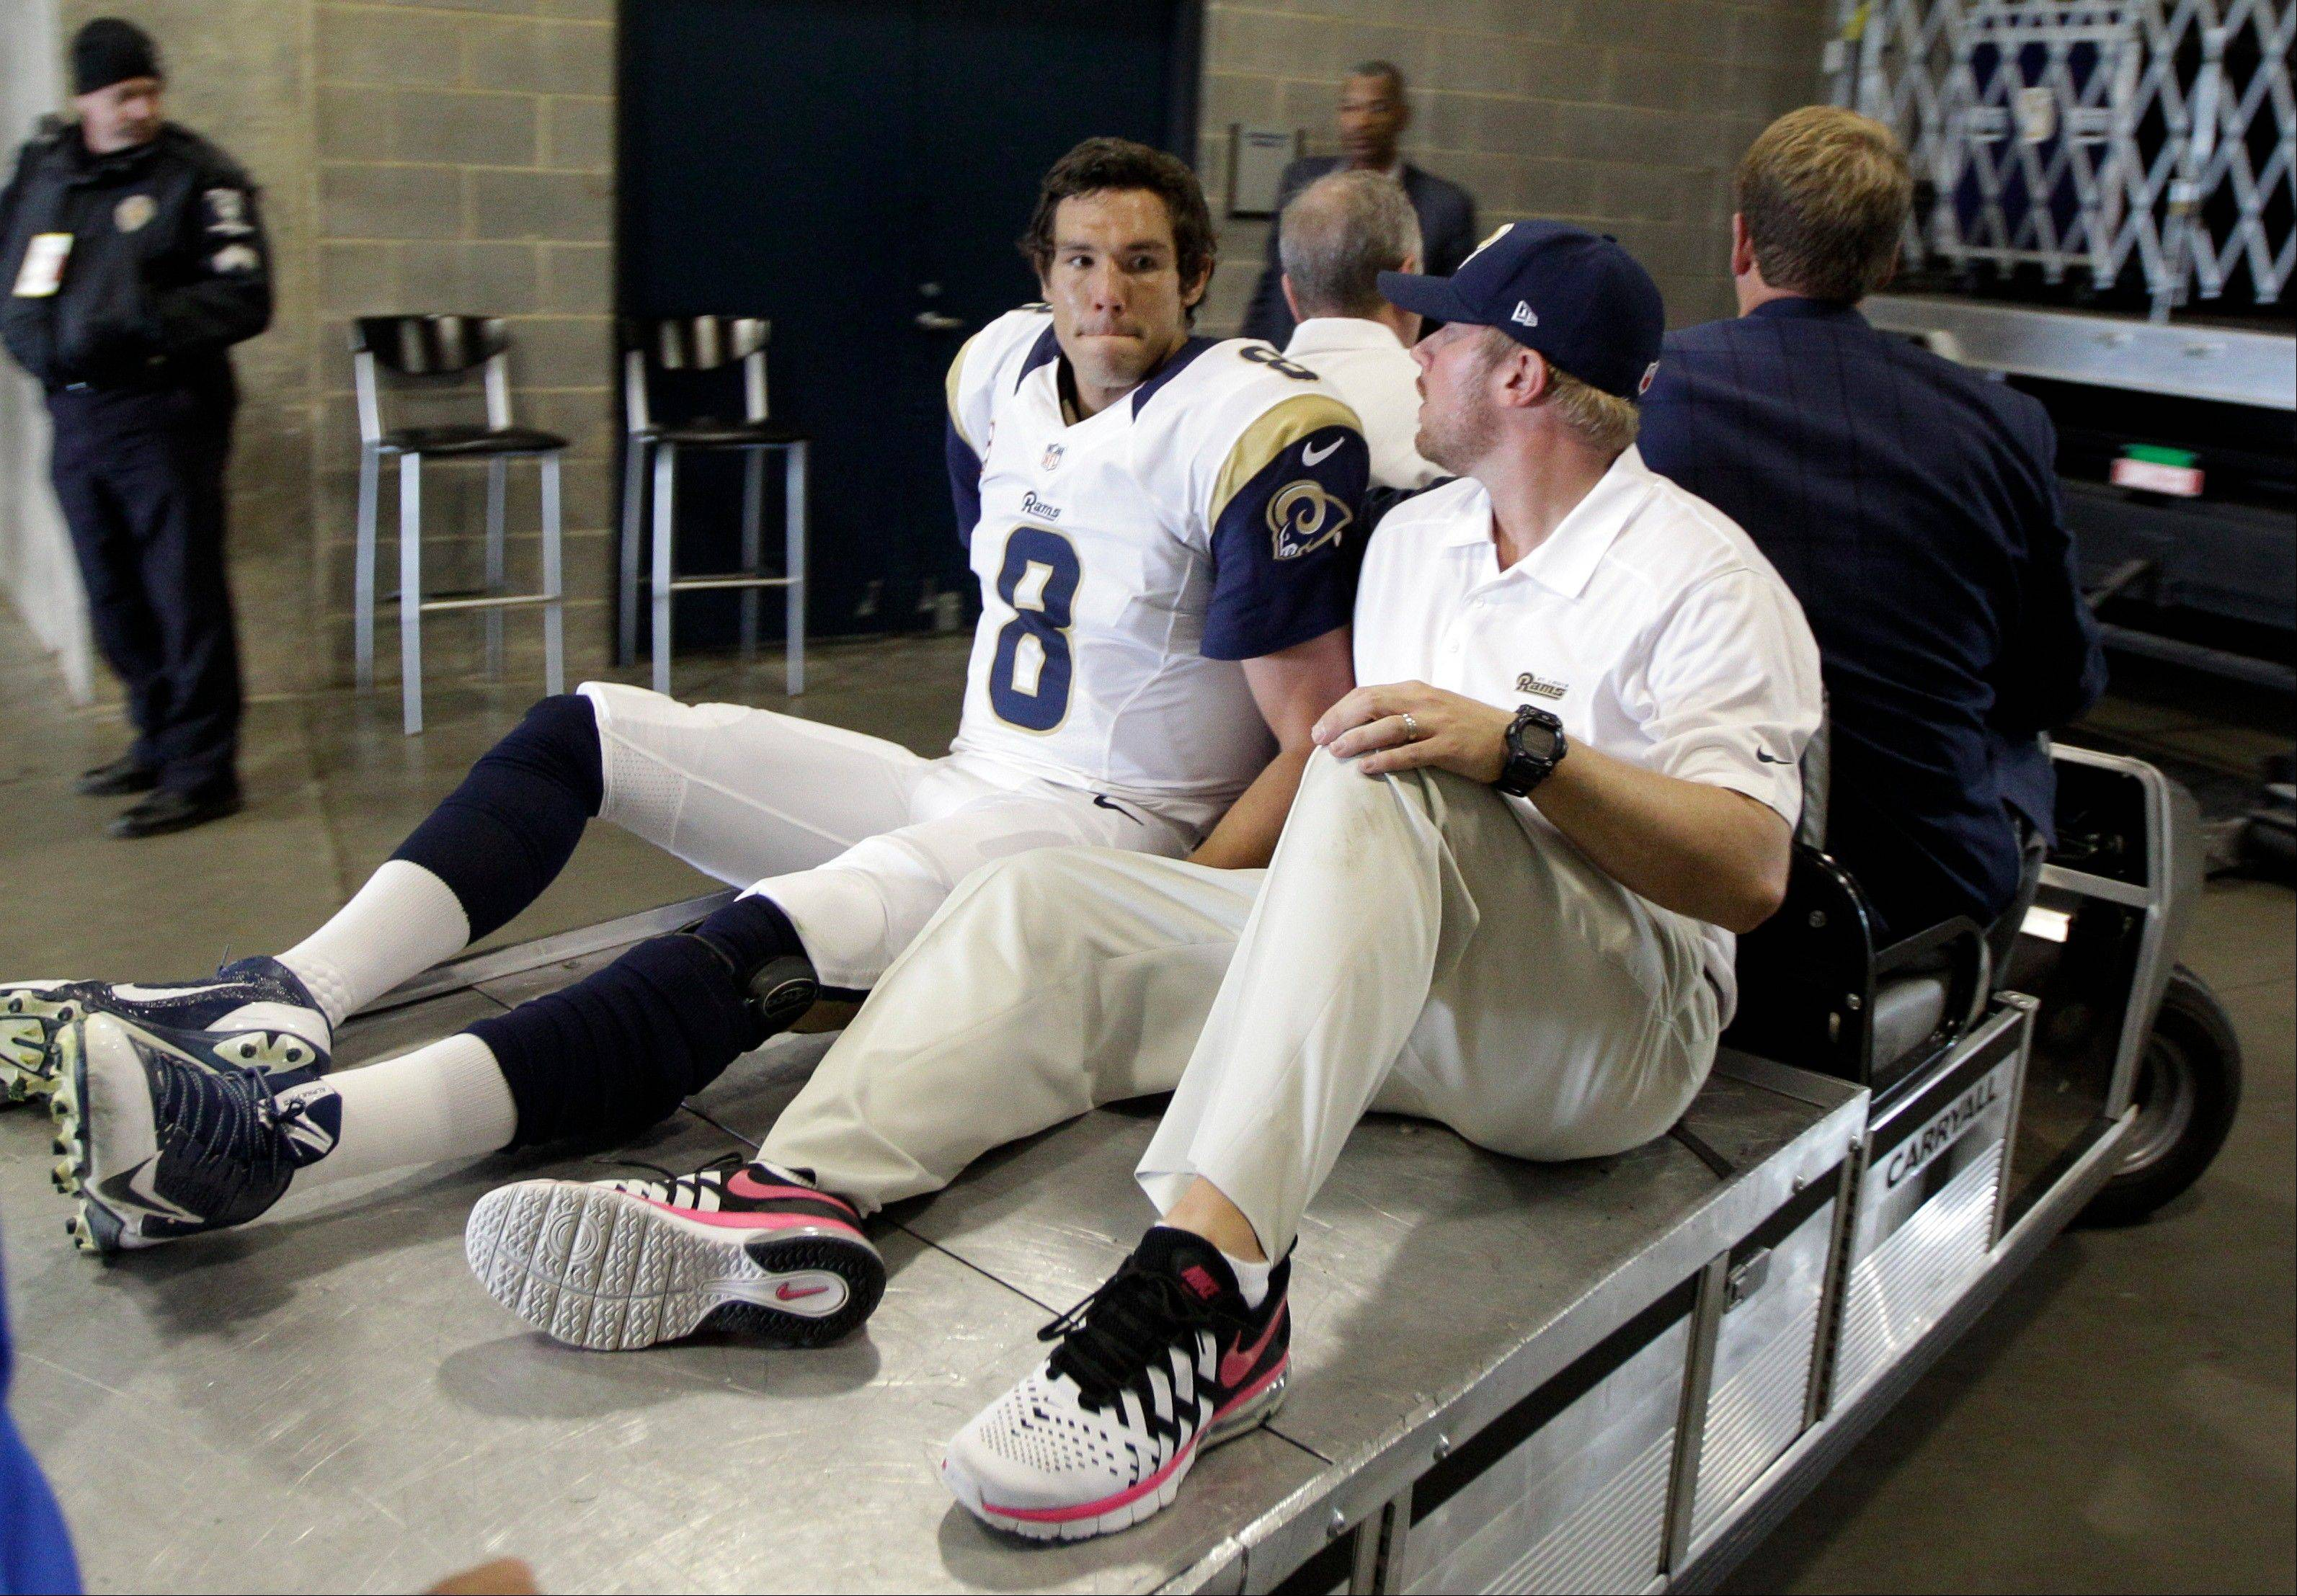 St. Louis quarterback Sam Bradford will miss the rest of the season because of a torn knee ligament suffered in Sunday's road game against the Carolina Panthers.